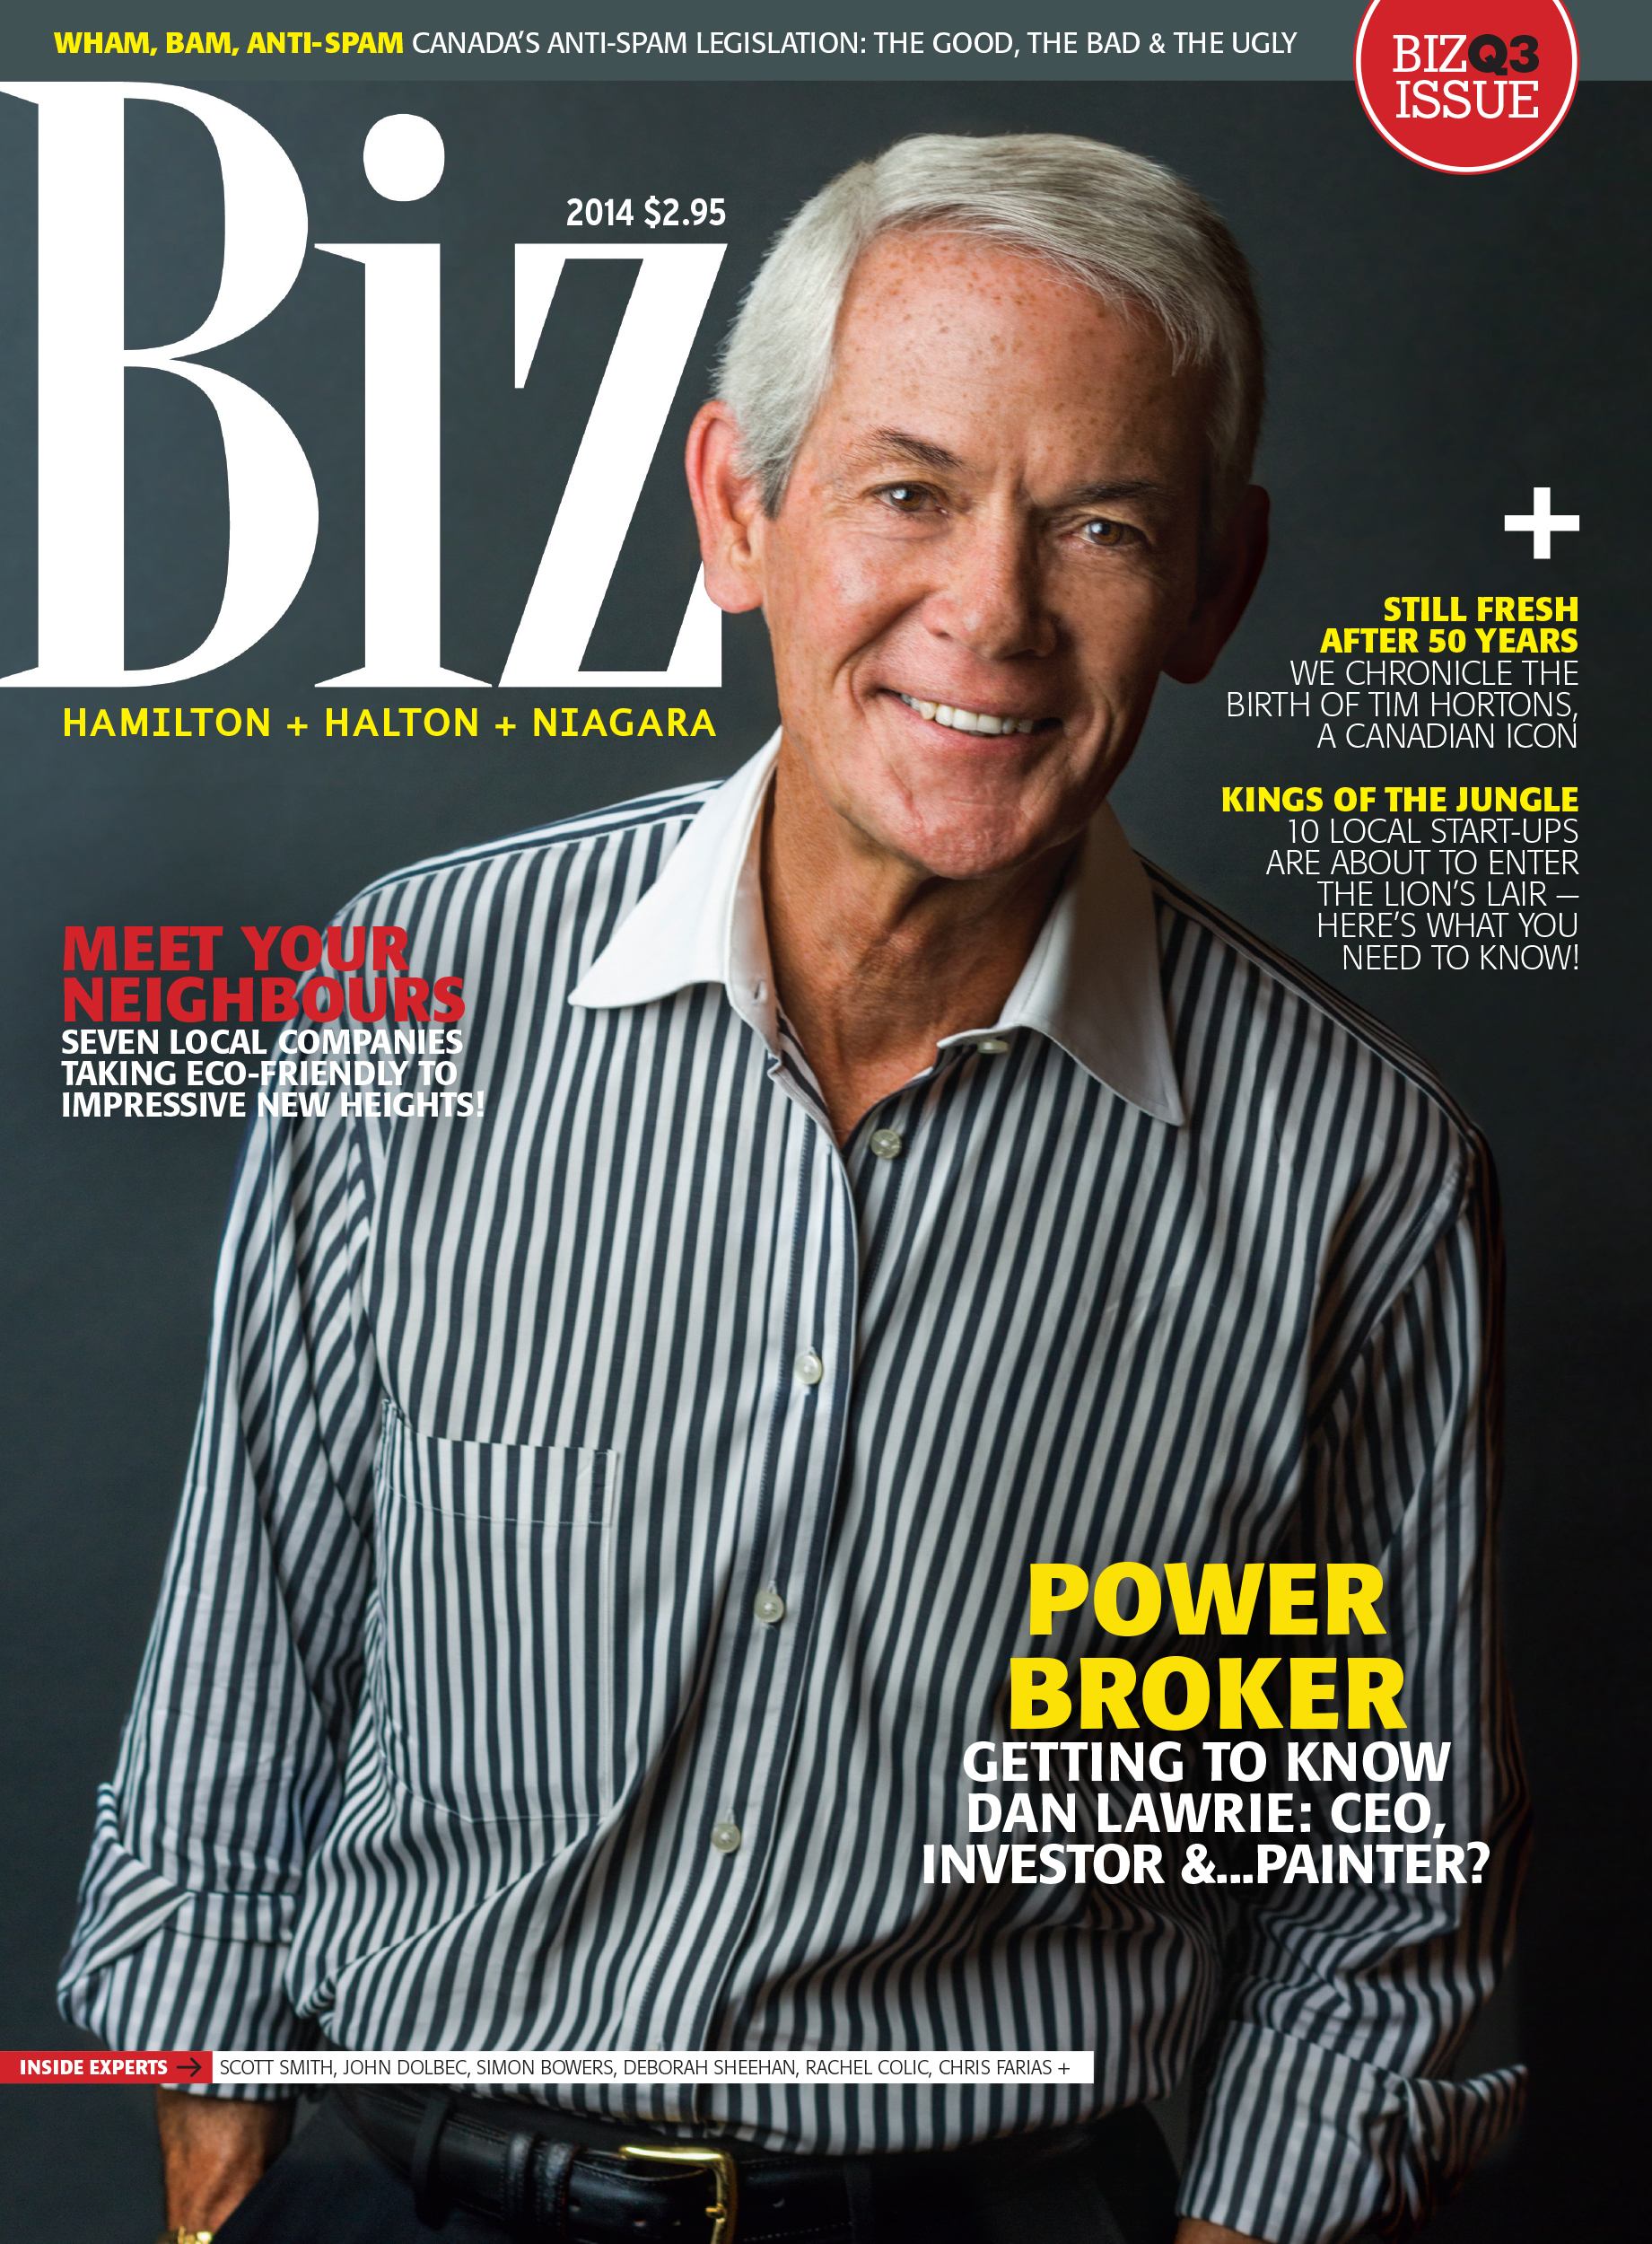 2014-03-00-Toronto-Ontario-Canada-editorial-photography-portrait-business-insurance-executive-Dan-Lawrie-Biz-magazine-cover-by-Kevin-Patrick-Robbins-KPR.jpg